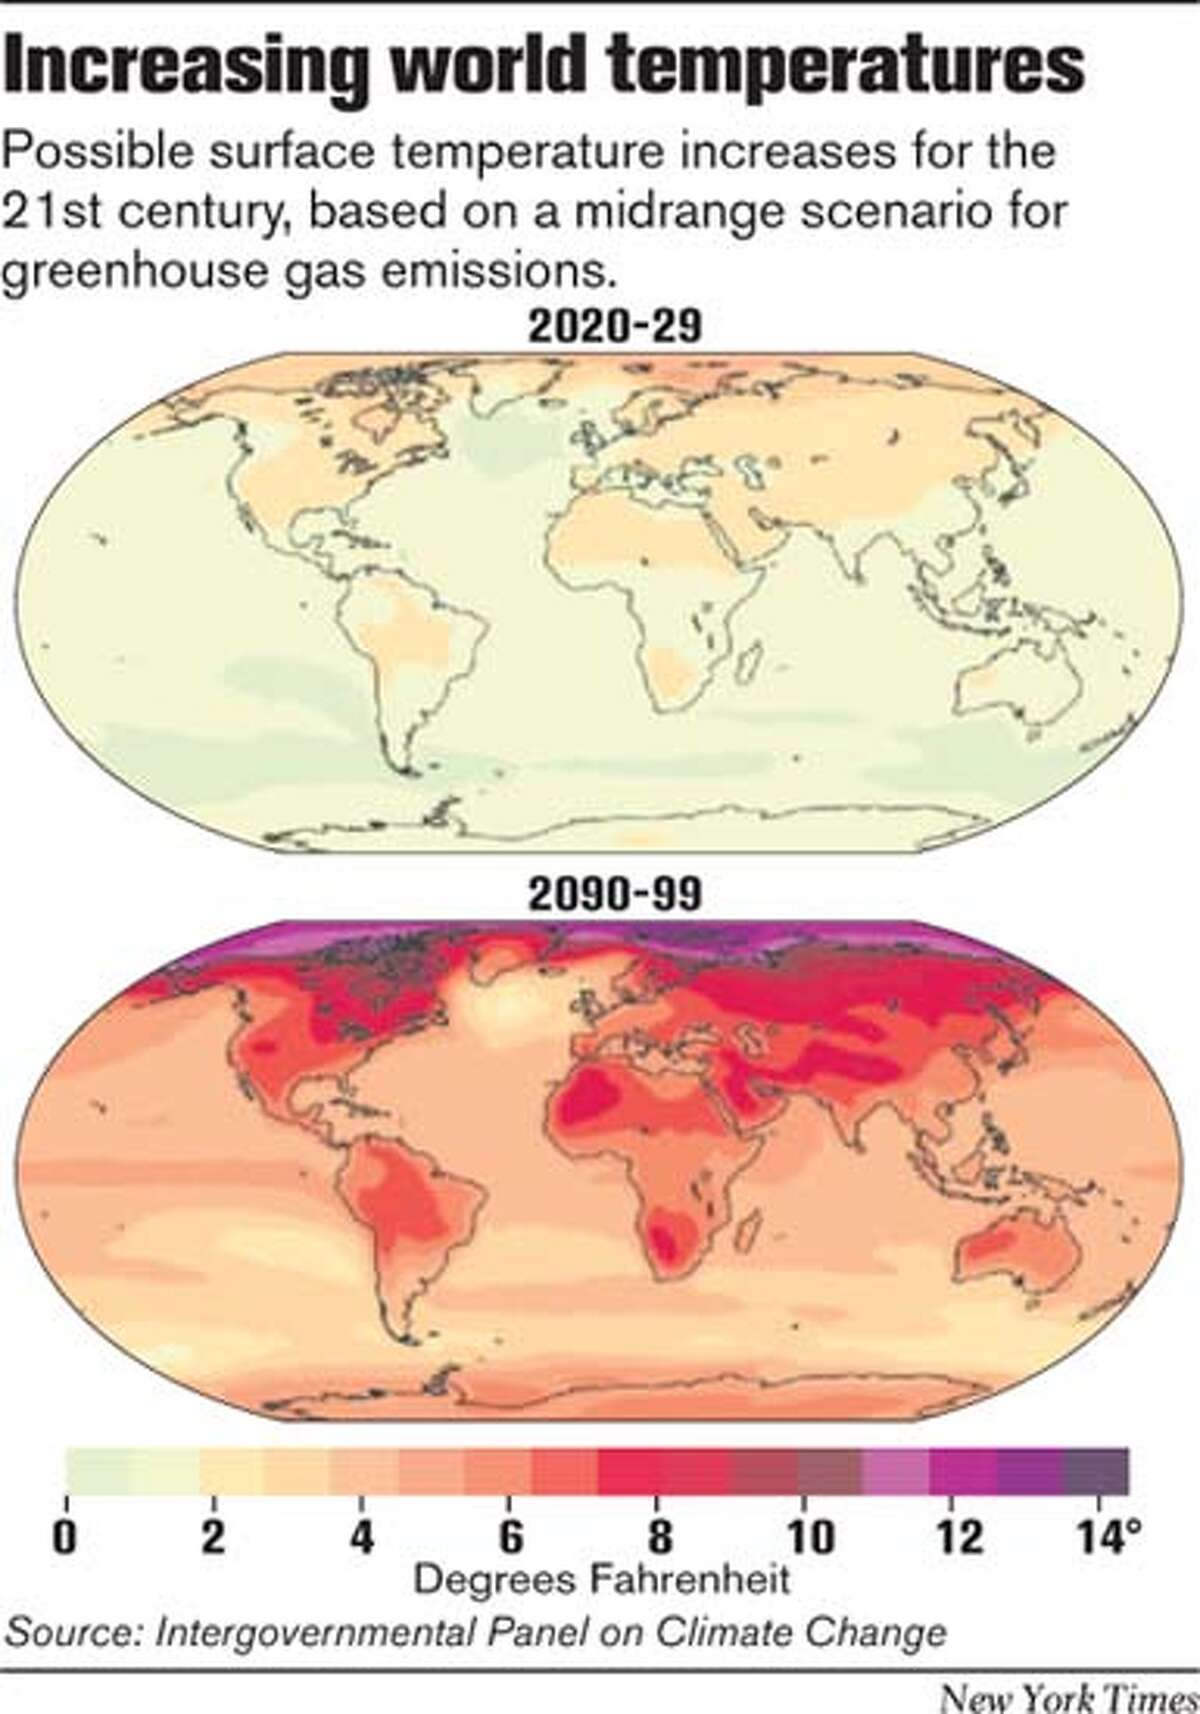 Increasing World Temperatures. New York Times Graphic